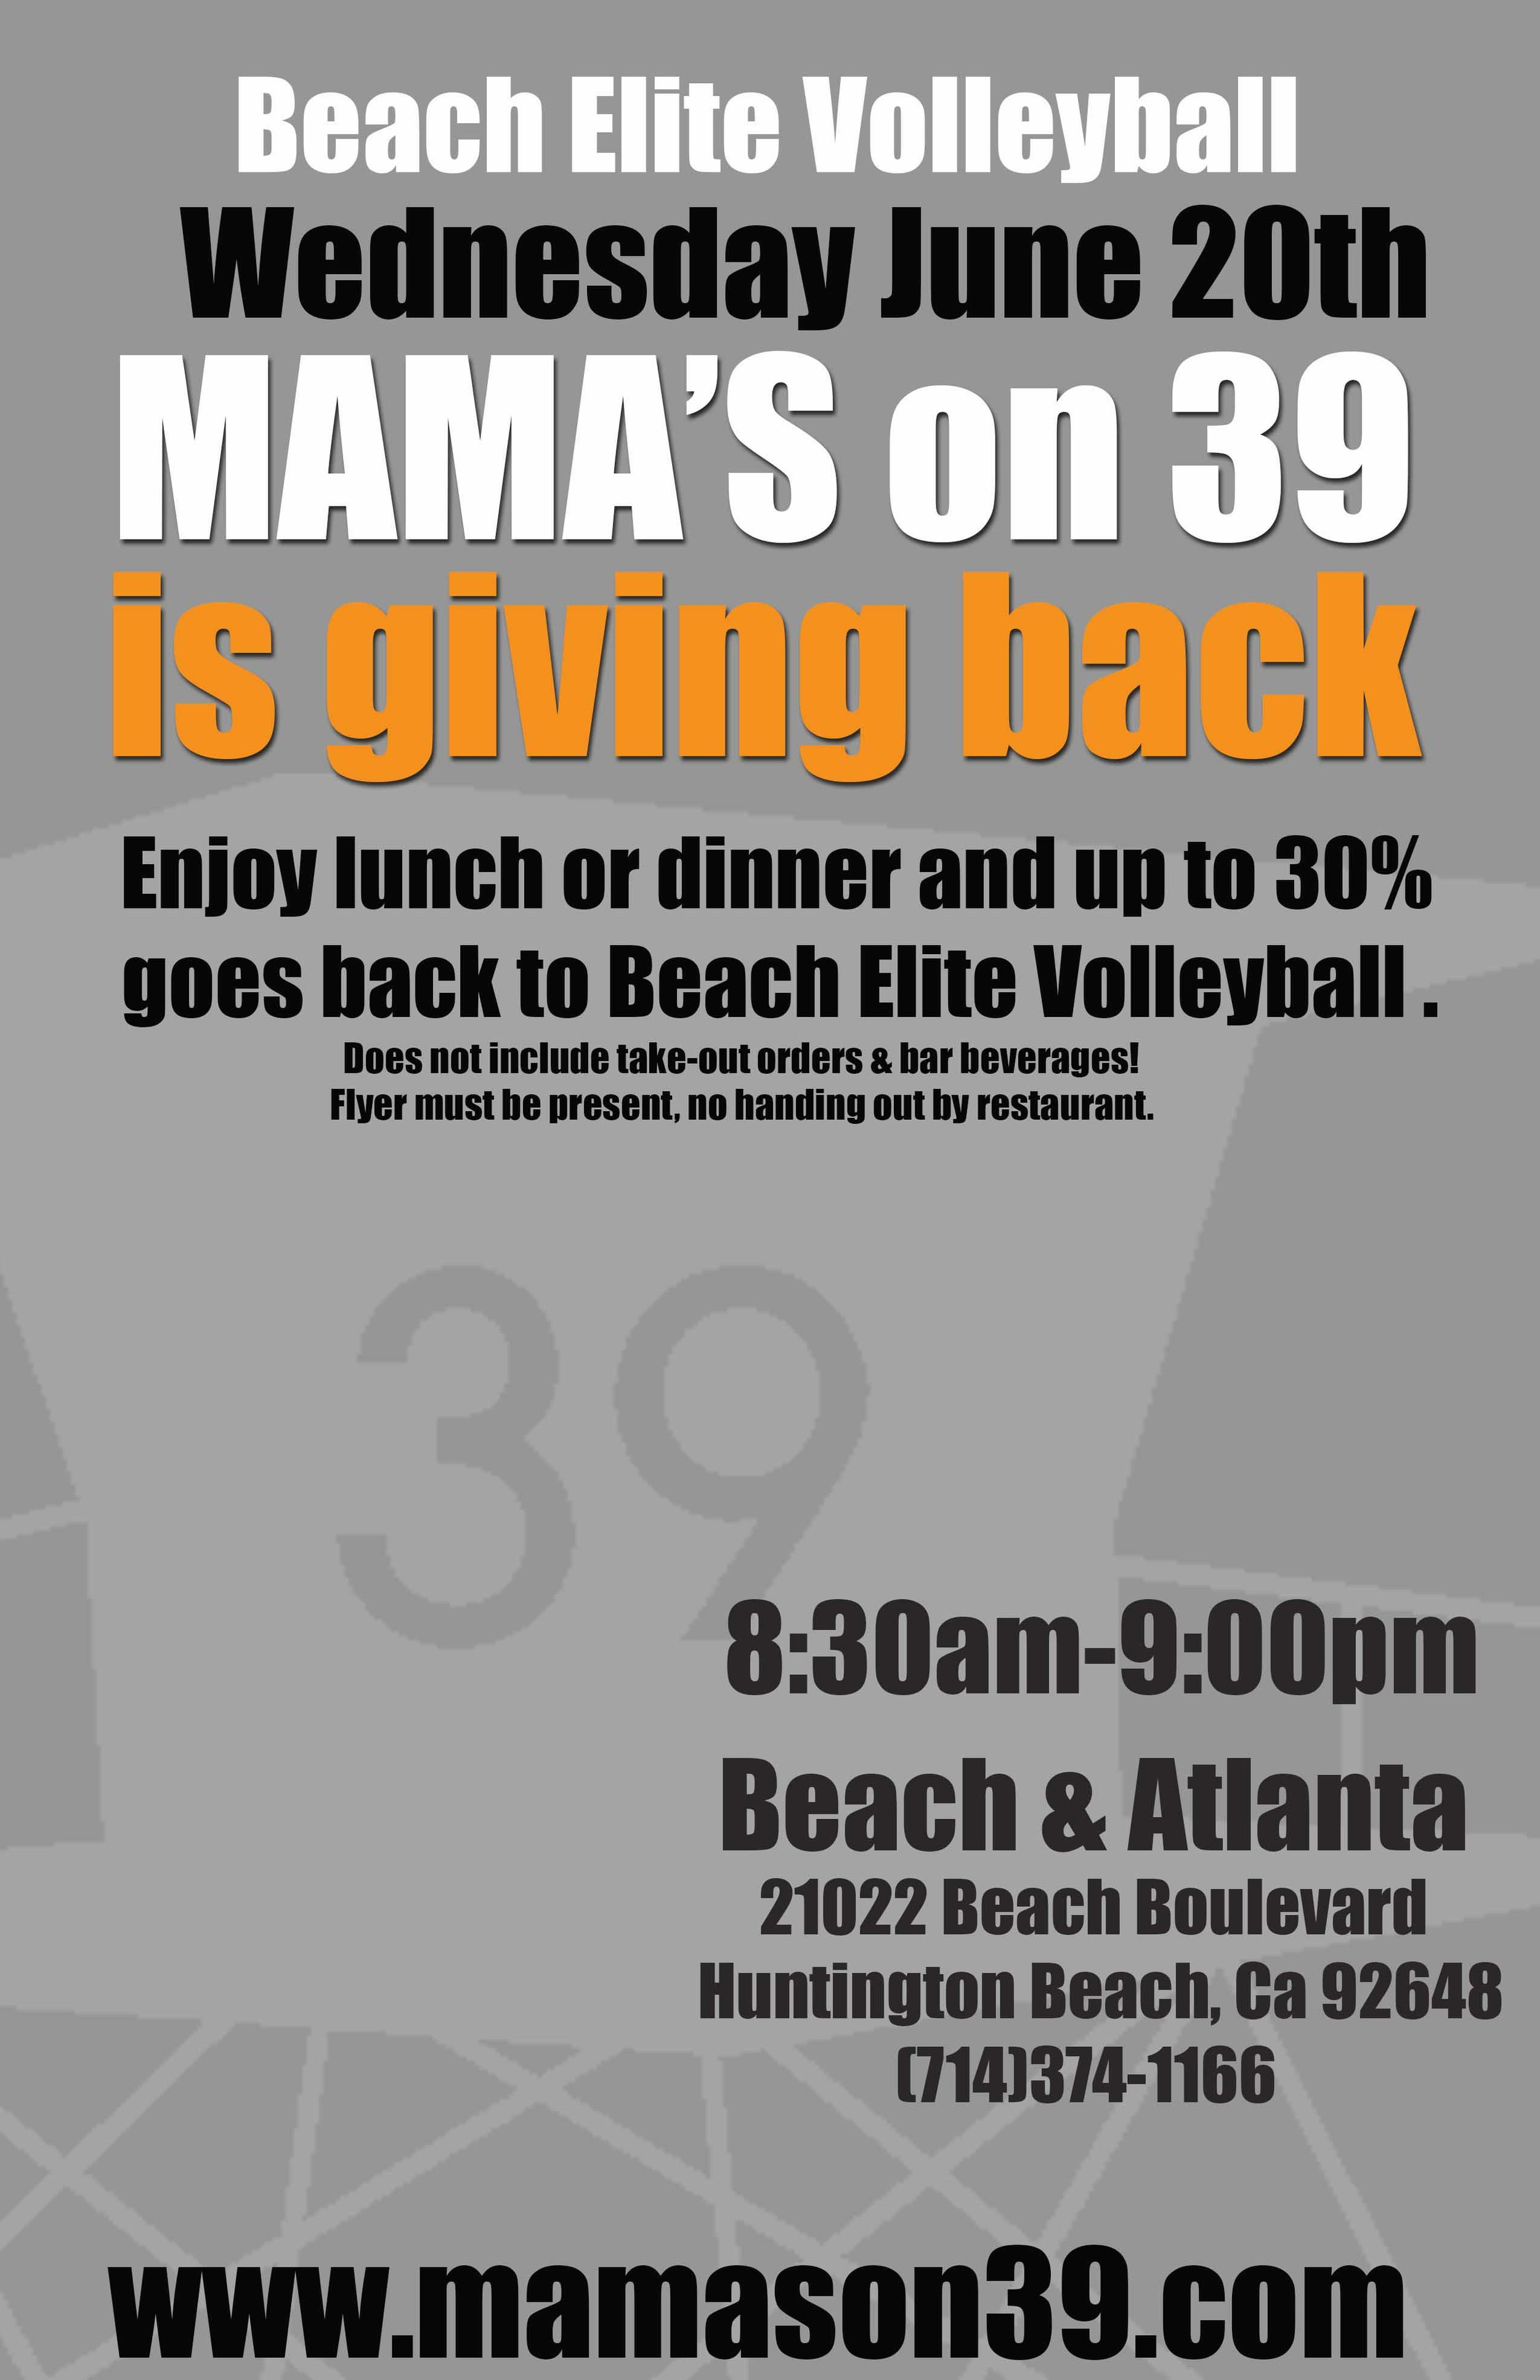 Come join us for dinner and Mama's on 39 in Huntington Beach and also help raise money for the Beach Elite Scholarship Fund. Please take a picture of this flyer and show it to your server on your phone when you order! Wear your Beach Elite gear (uniforms, hoodies, hats, etc) and we will see you there!